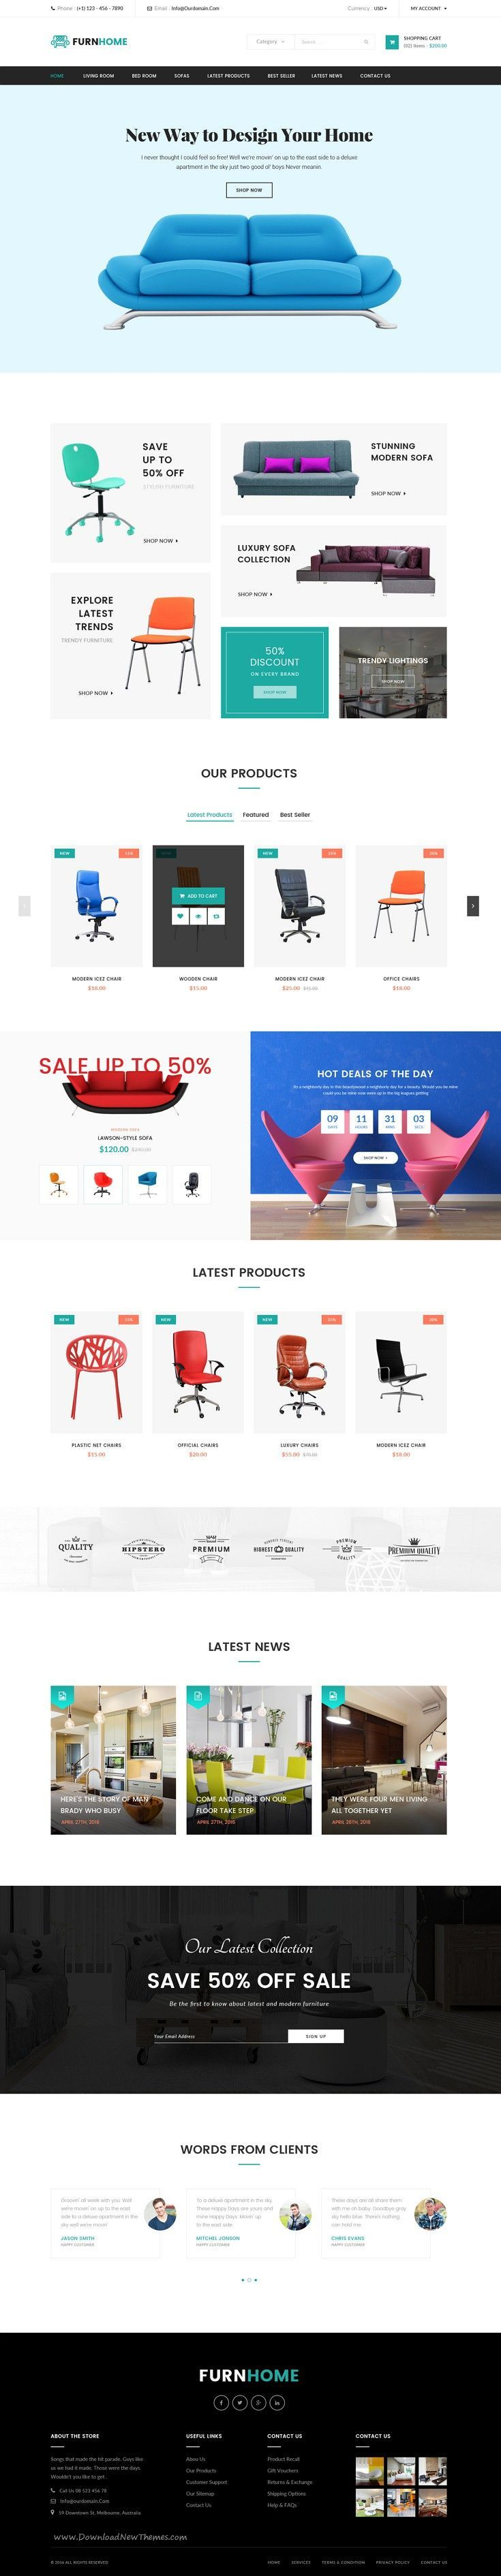 furnhome is beautiful ecommerce psd template for furniture shop online website - Beautiful Furniture Websites